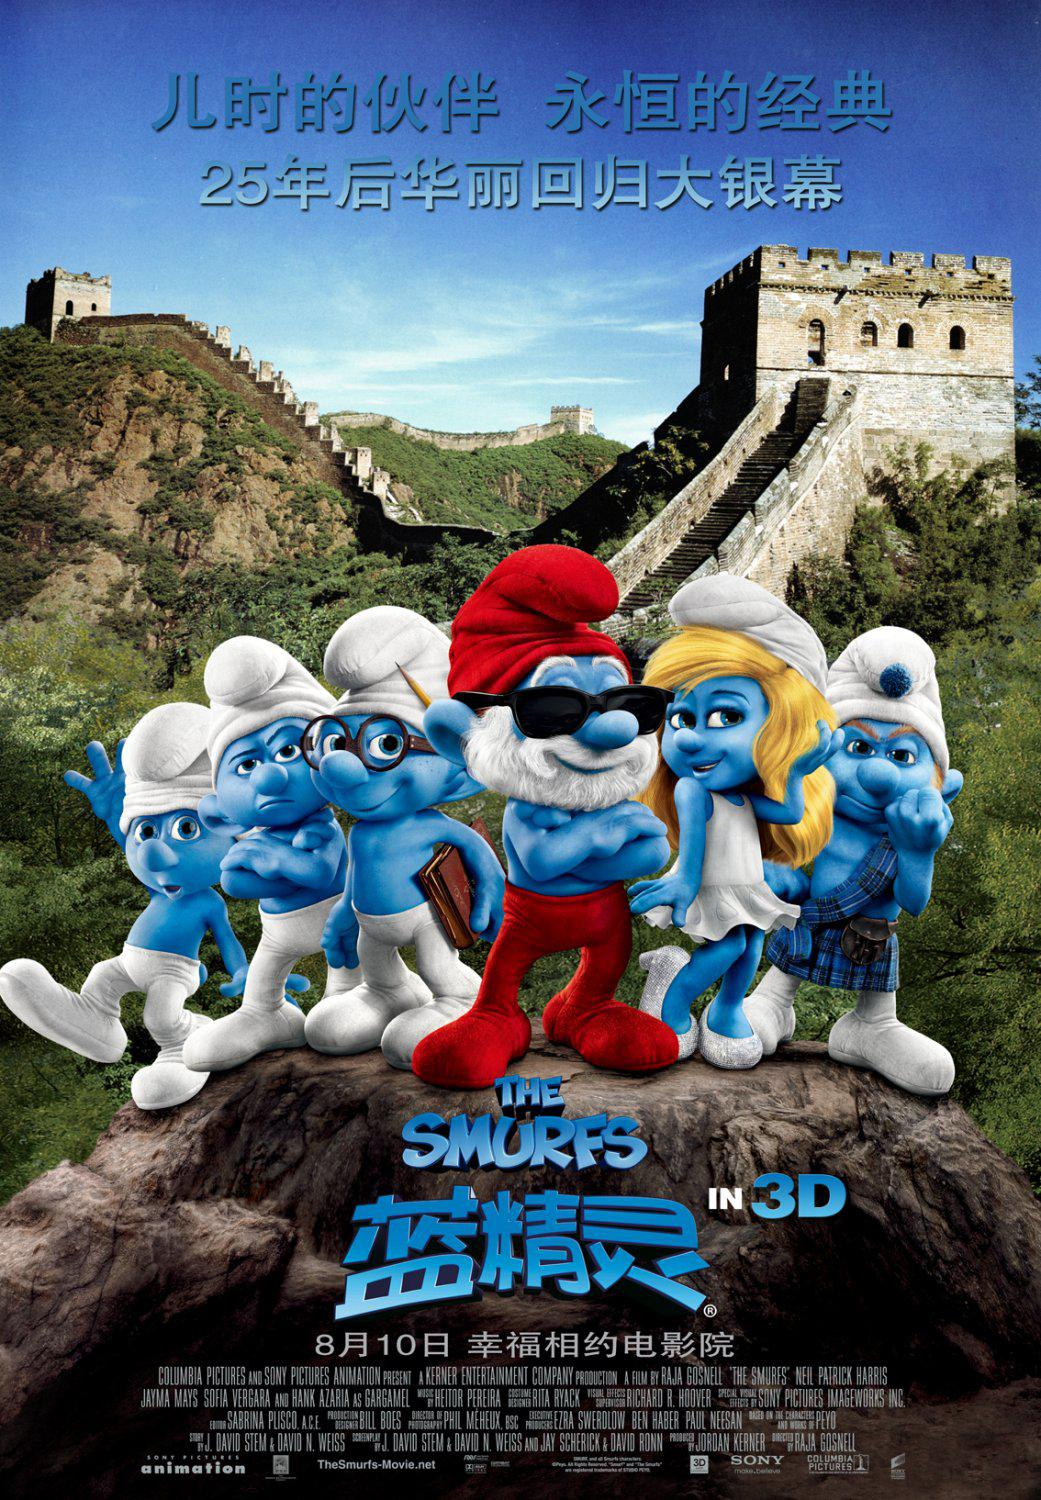 Film I Puffi in 3D - Movie Smurfs in 3D - poster - Muraglia Cinese